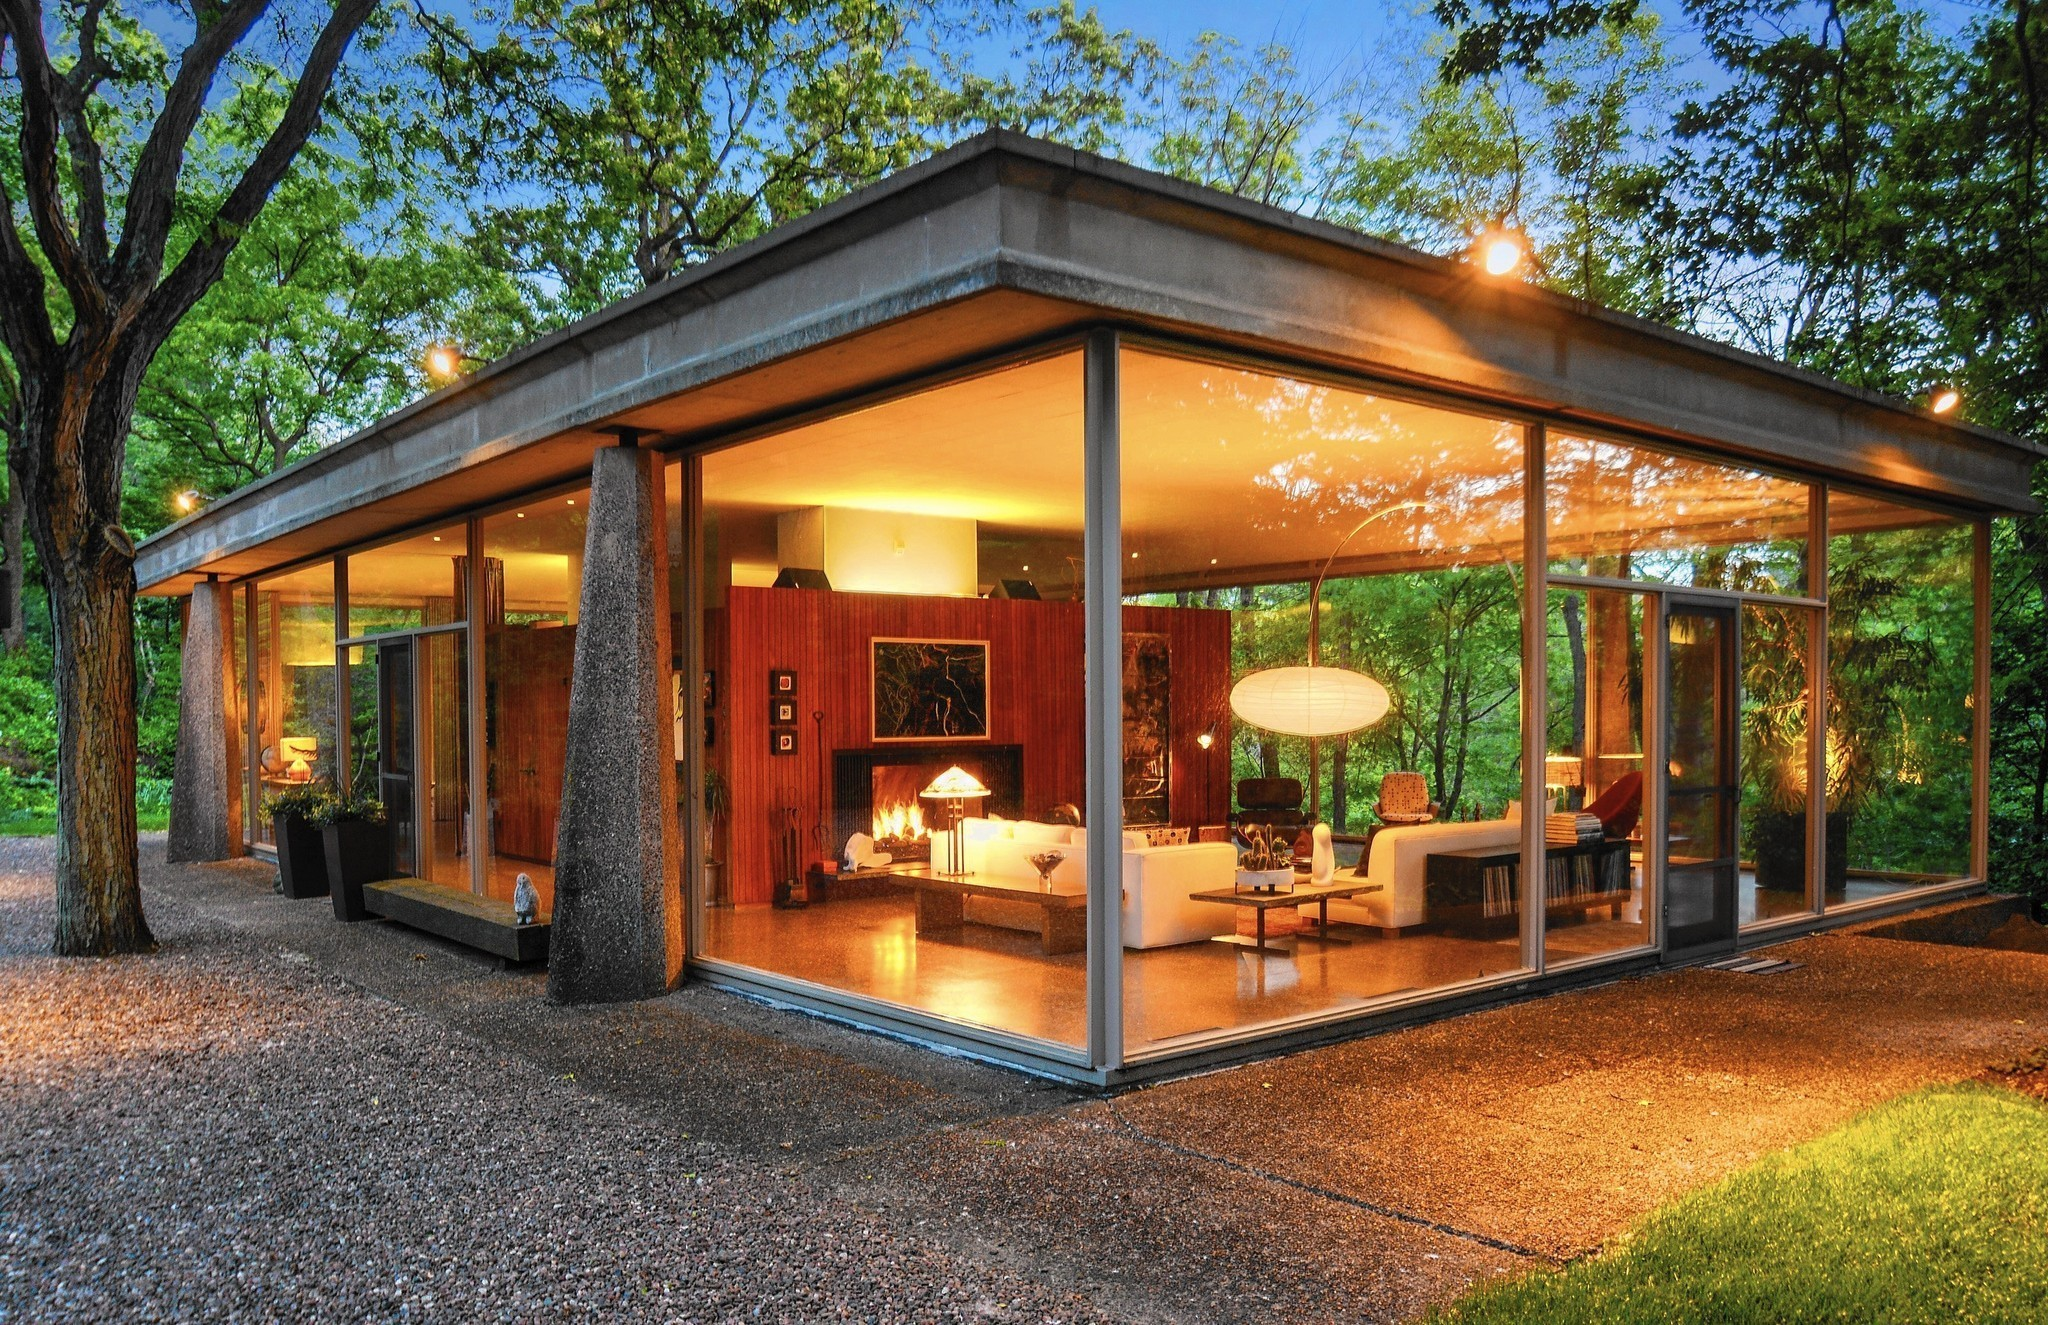 Van der rohe protege designed 39 glass house 39 for sale for Glass home plans